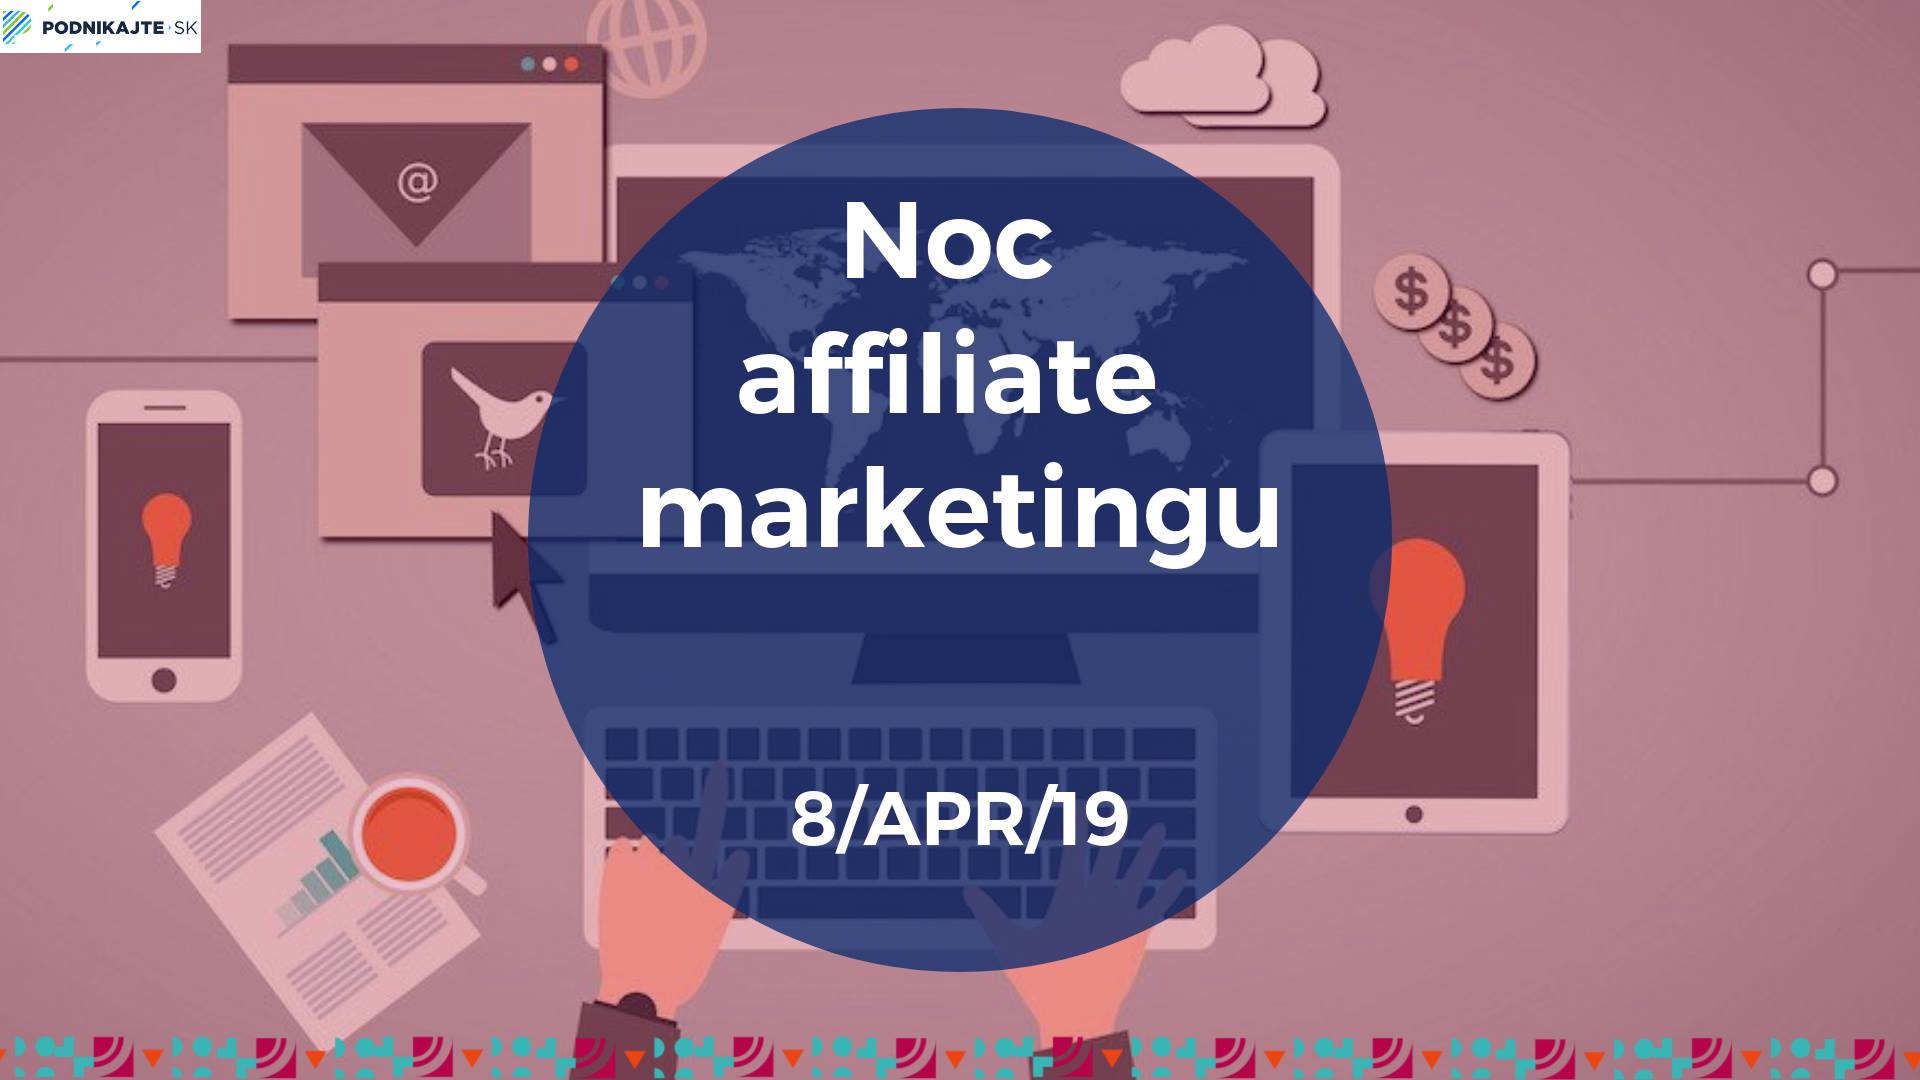 NOC affiliate marketingu/ 8.4.2019